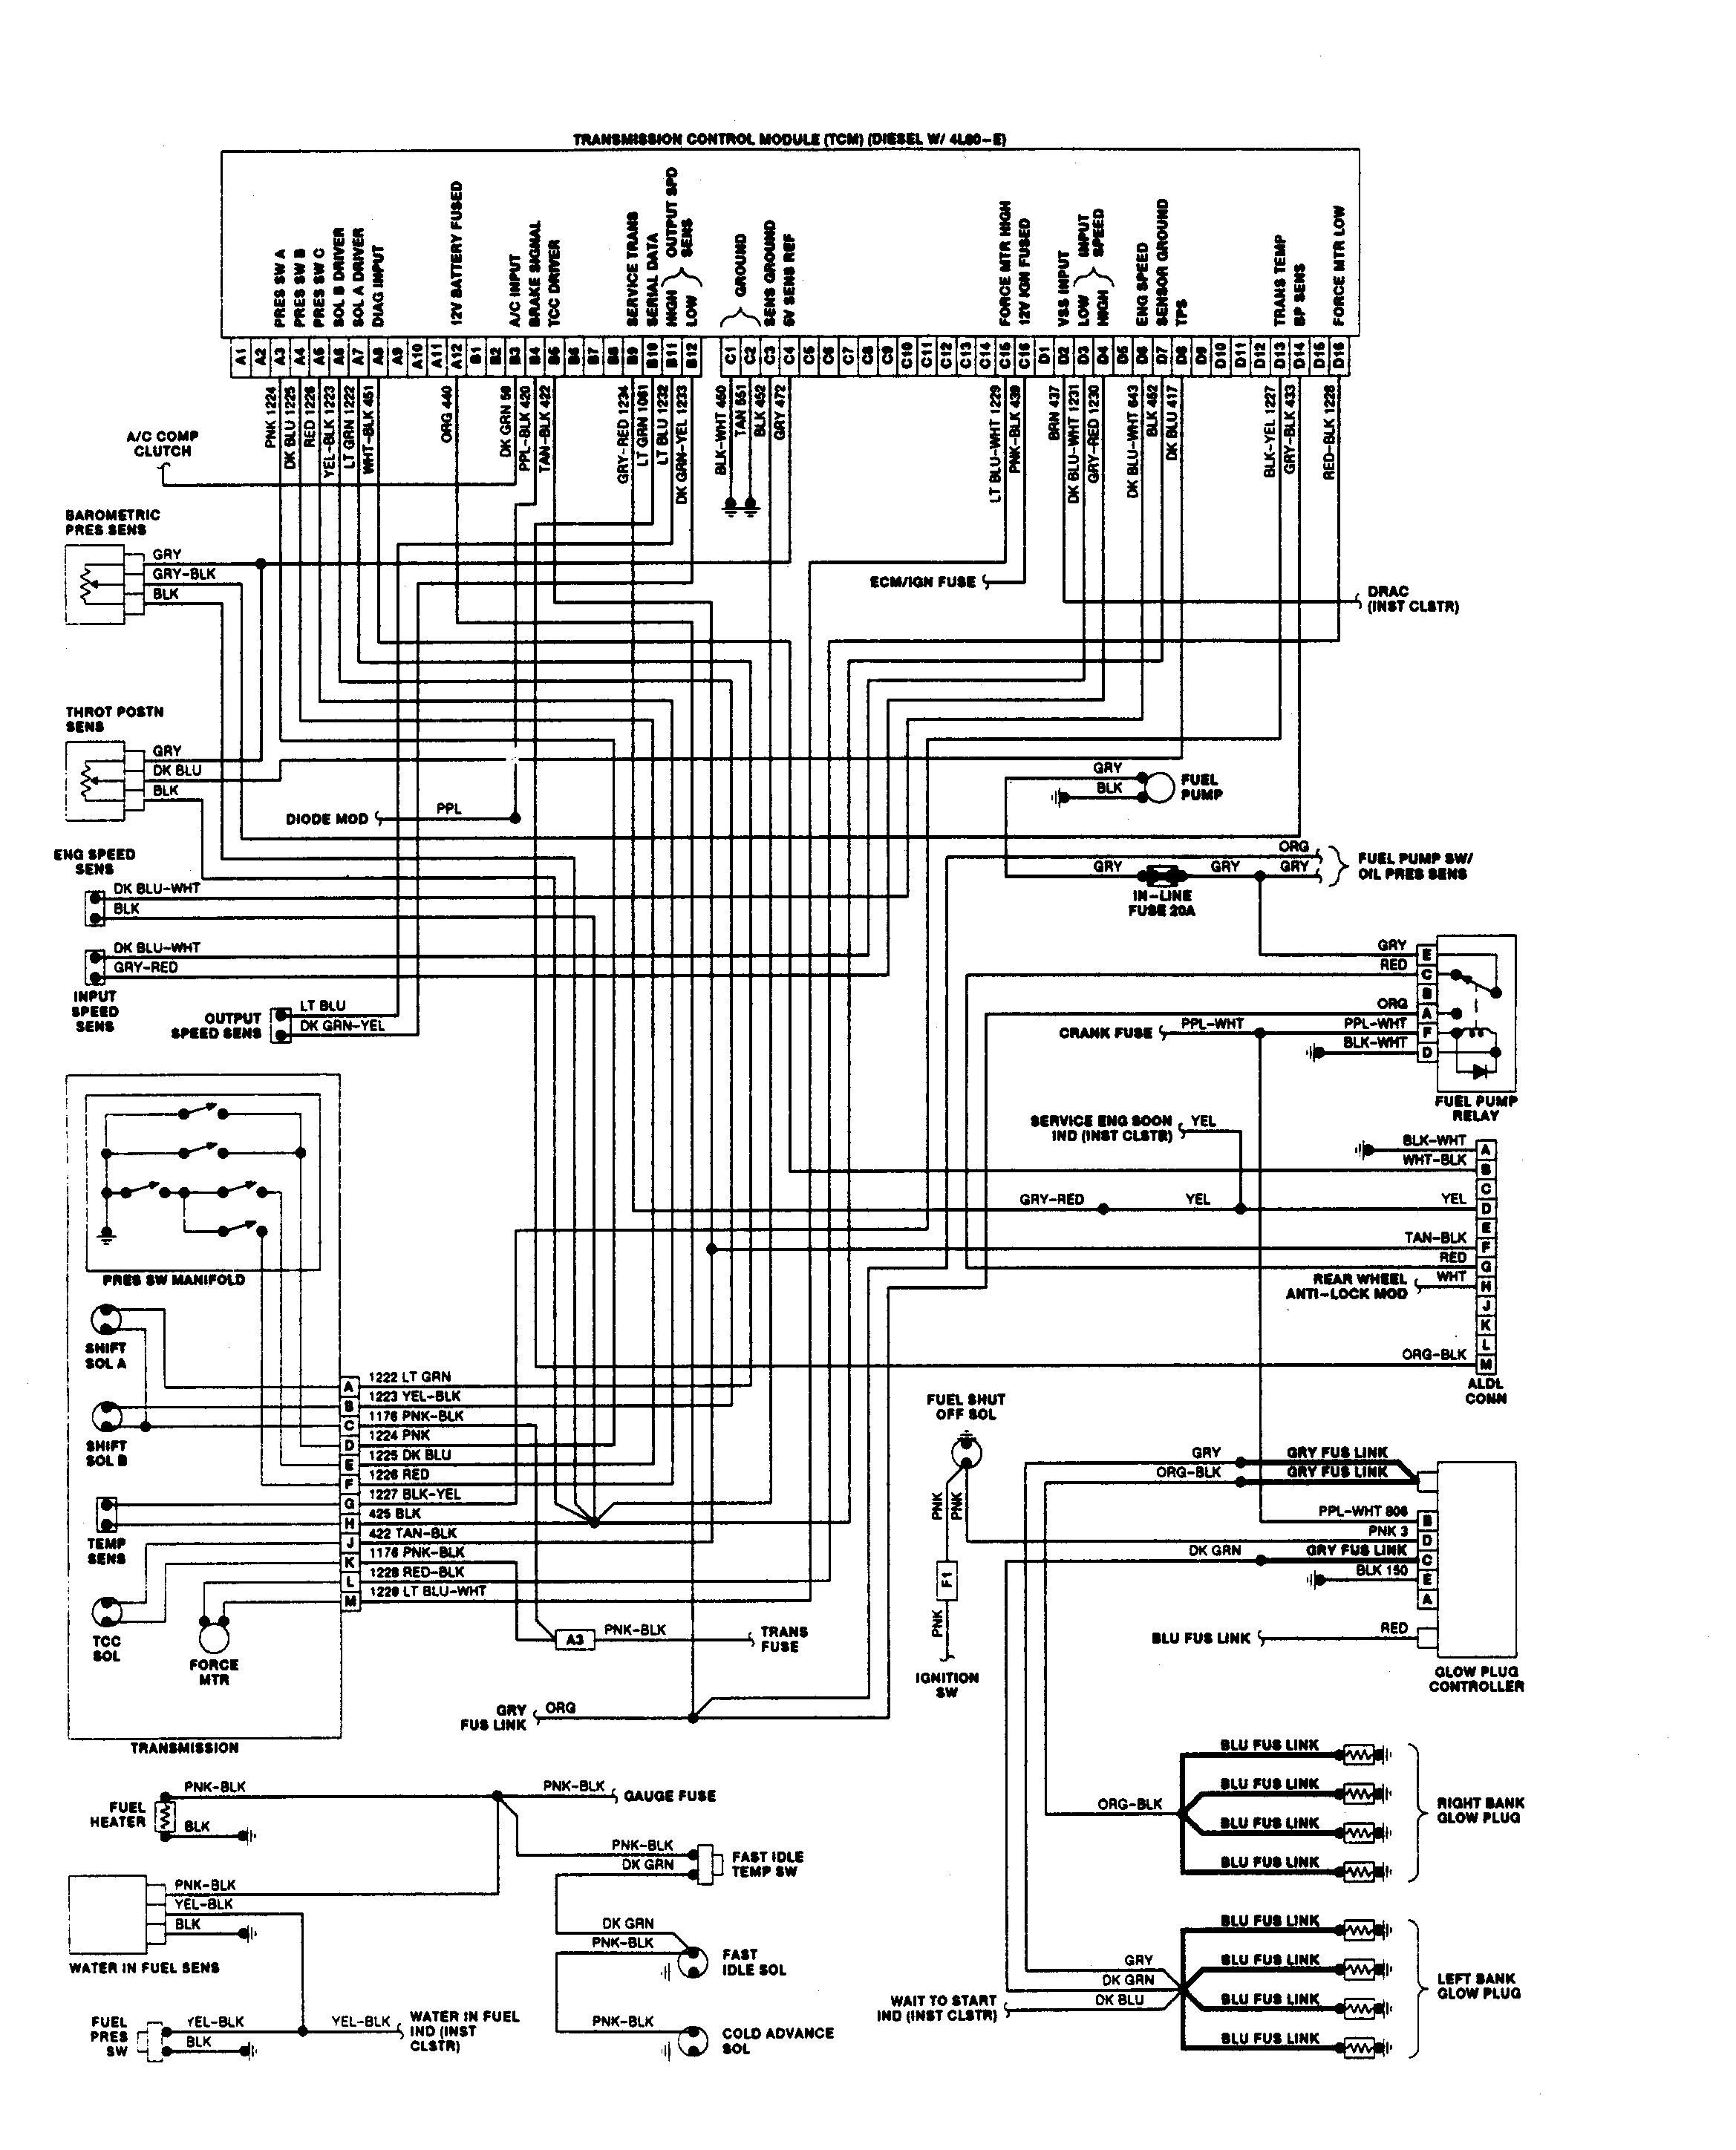 1991 chevy p30 wiring diagrams wiring diagrams schematics 1991 chevy lumina wiring diagram 1991 chevy p30 wiring diagrams [ 2338 x 2896 Pixel ]